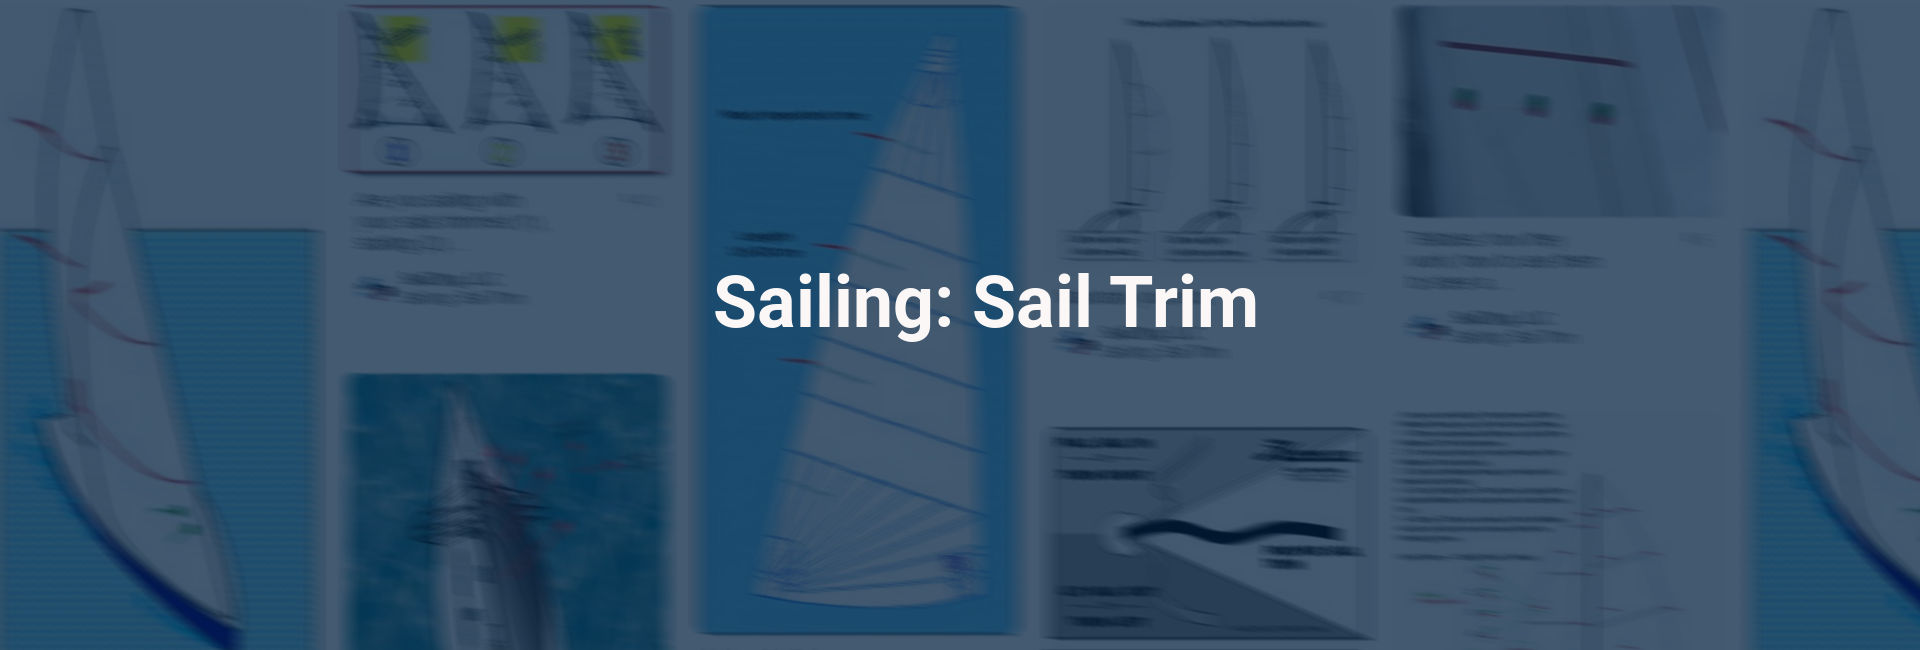 hight resolution of sail trim board sailzing sailboat terms diagram pirate ship sails printable templates